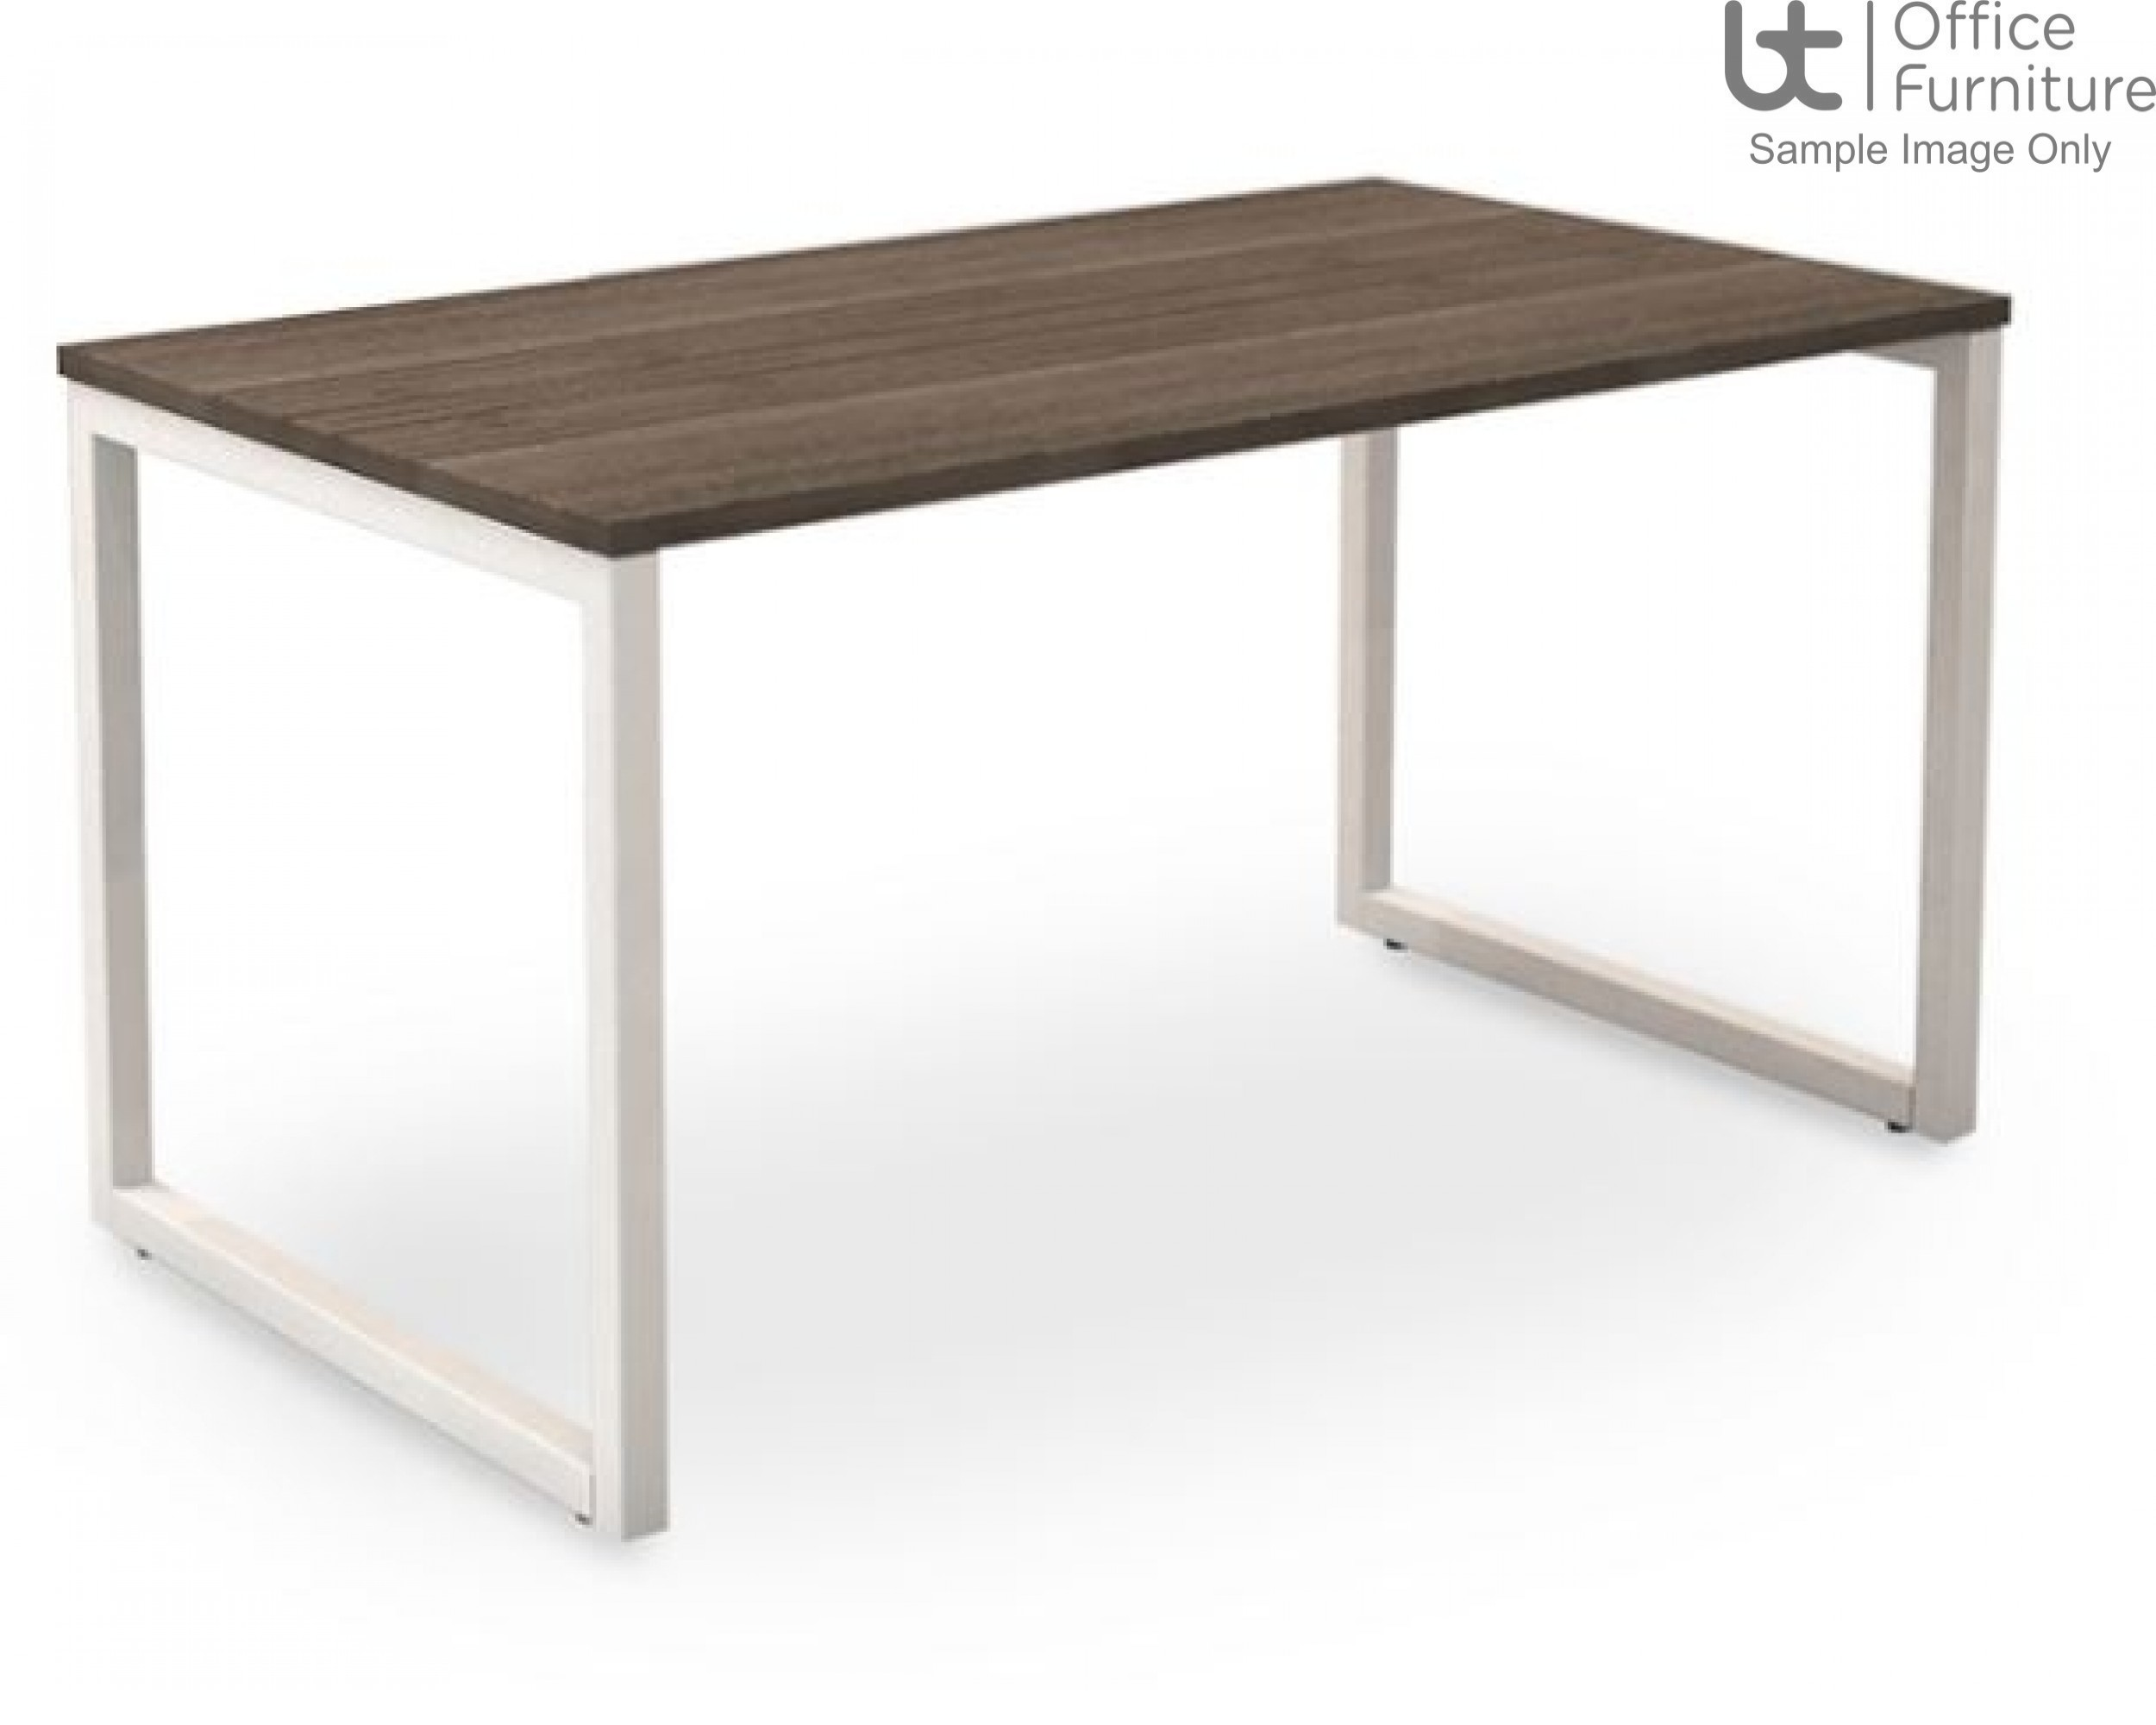 Robust Block Steel Frame Bench Dining Table W1800 x D800 x H740mm